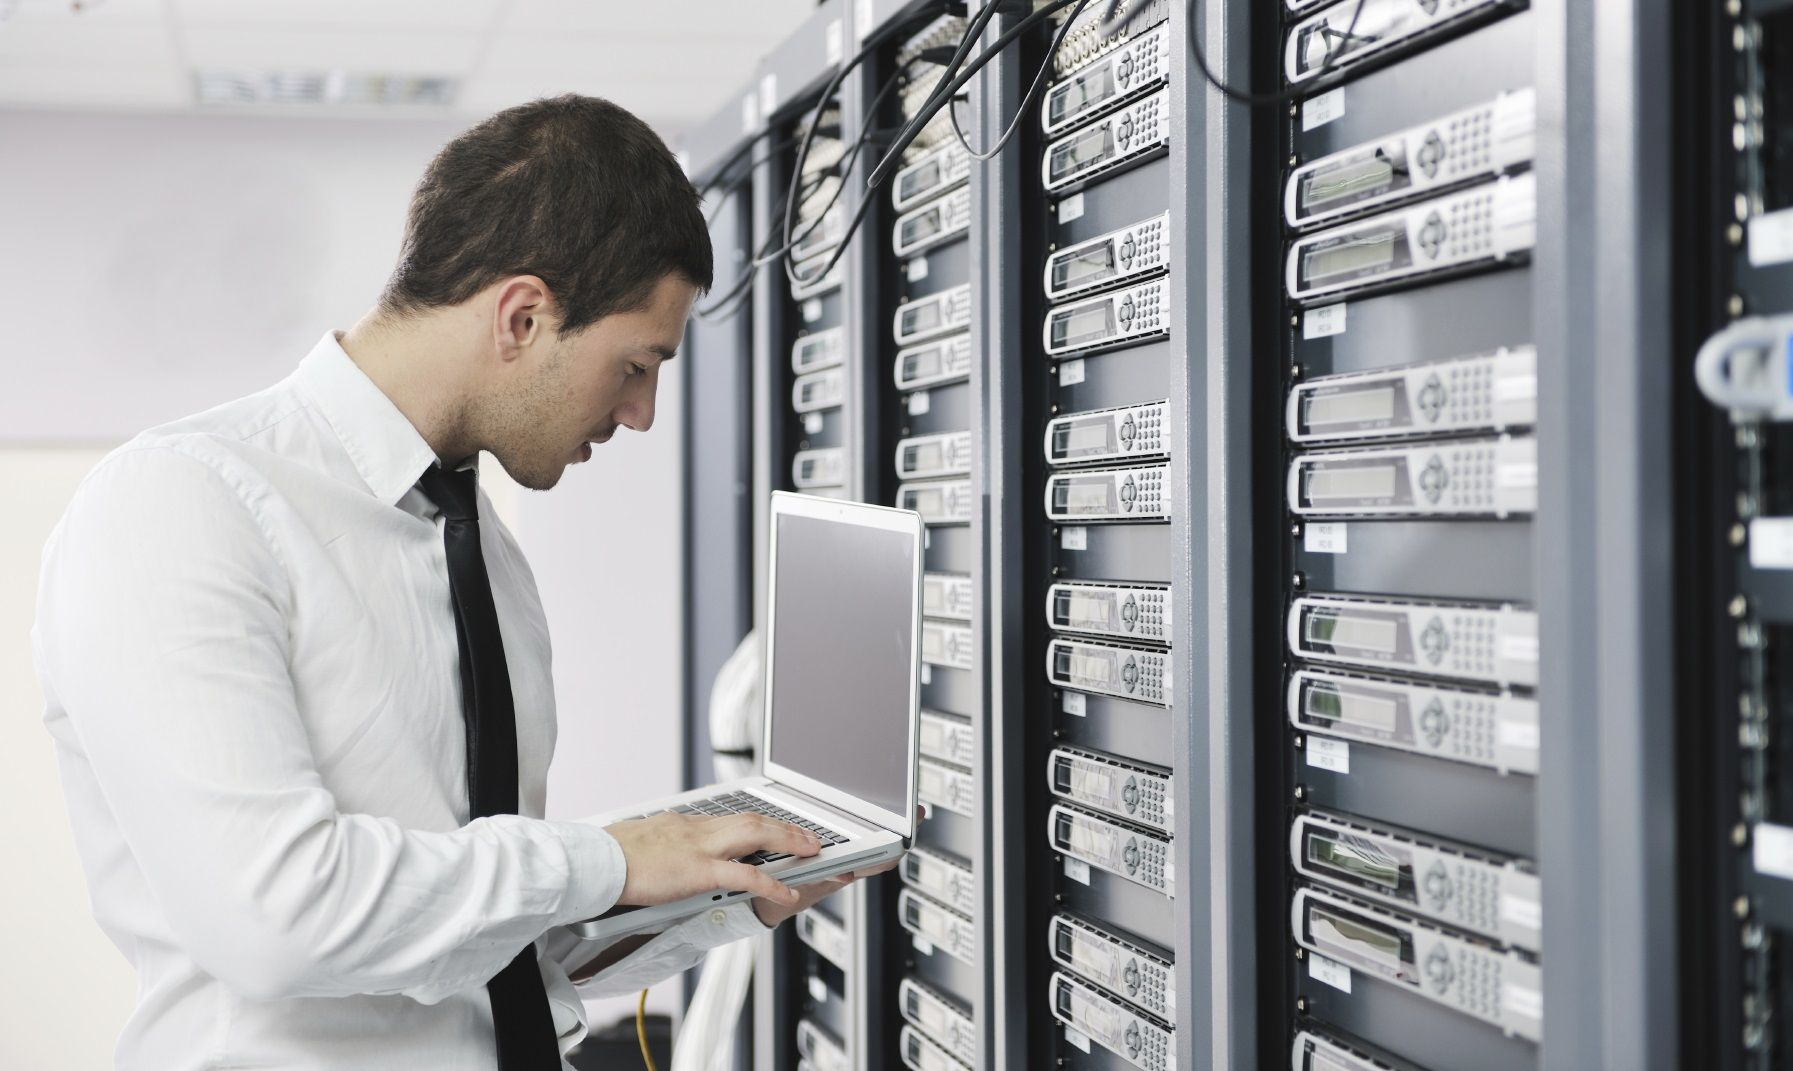 System Engineer IT Service Provider https//kiwisearch